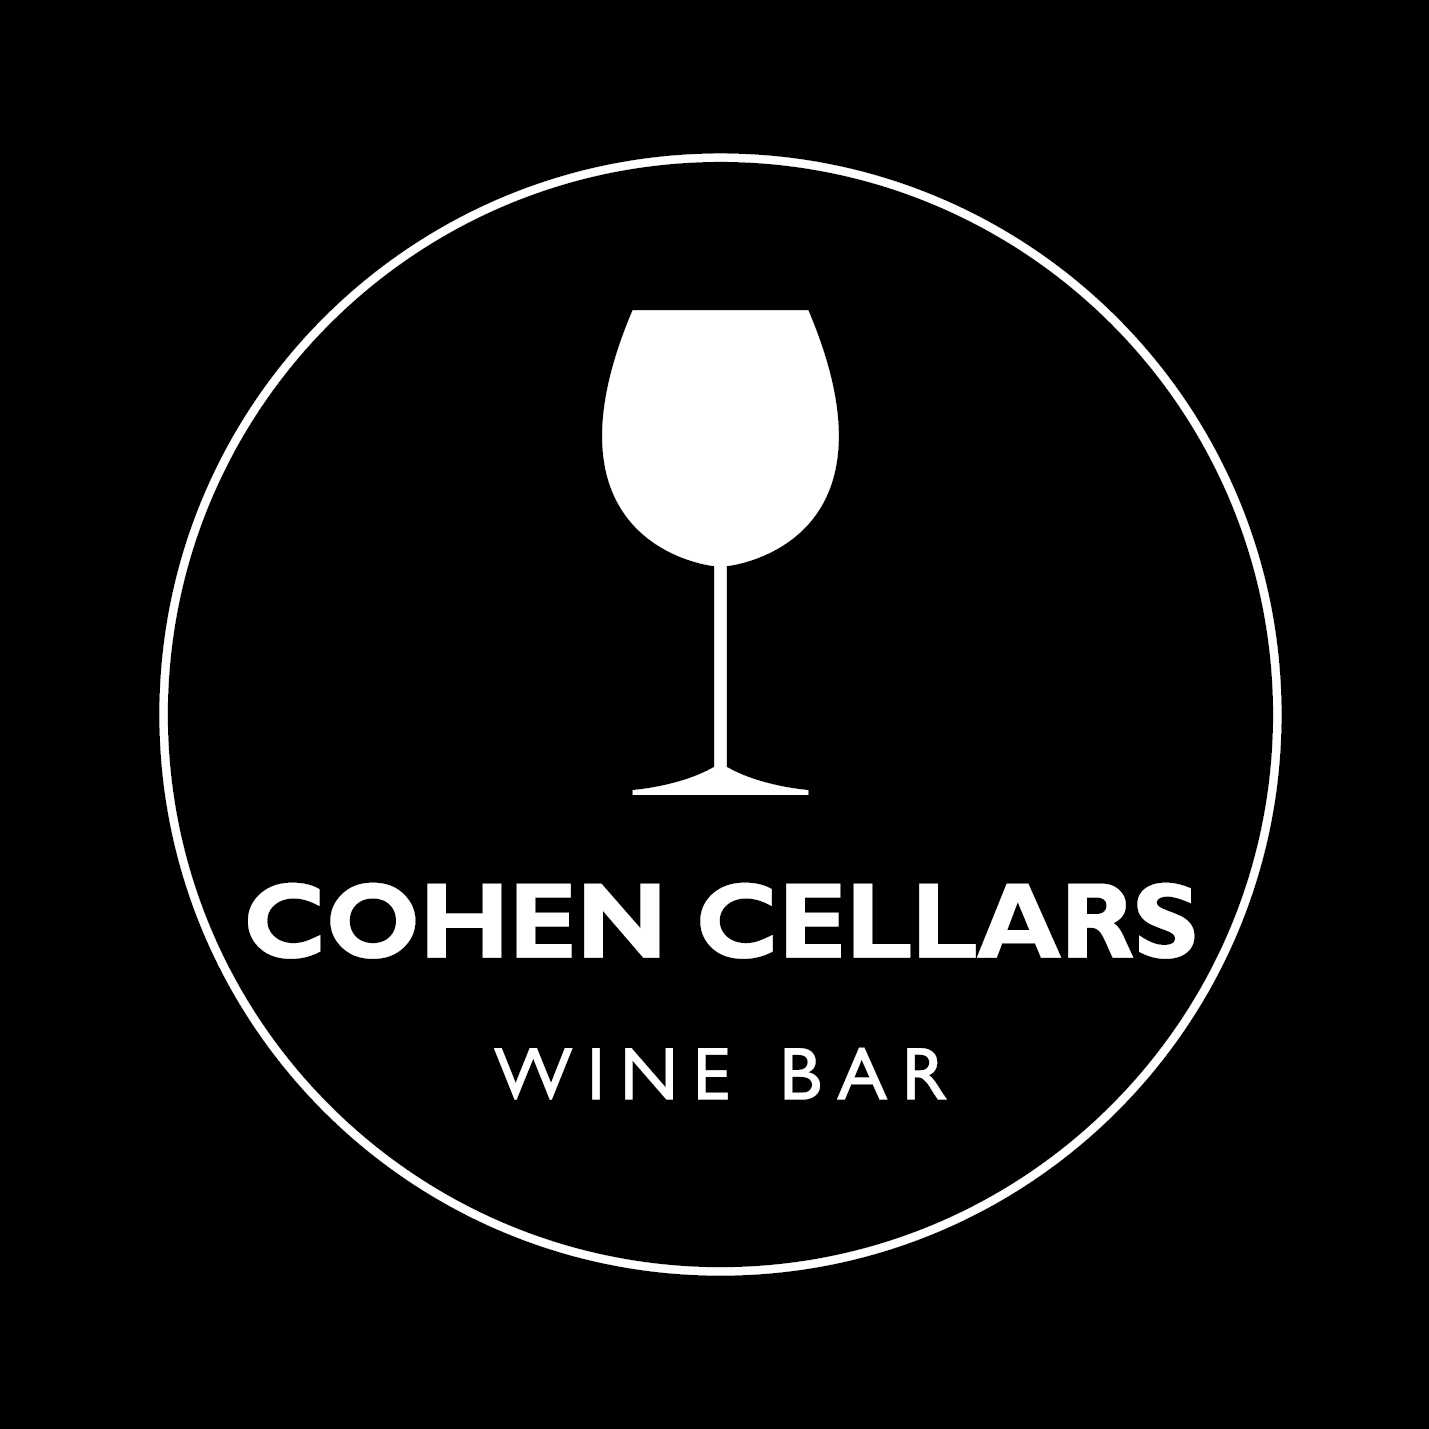 Cohen Cellars Wine Bar